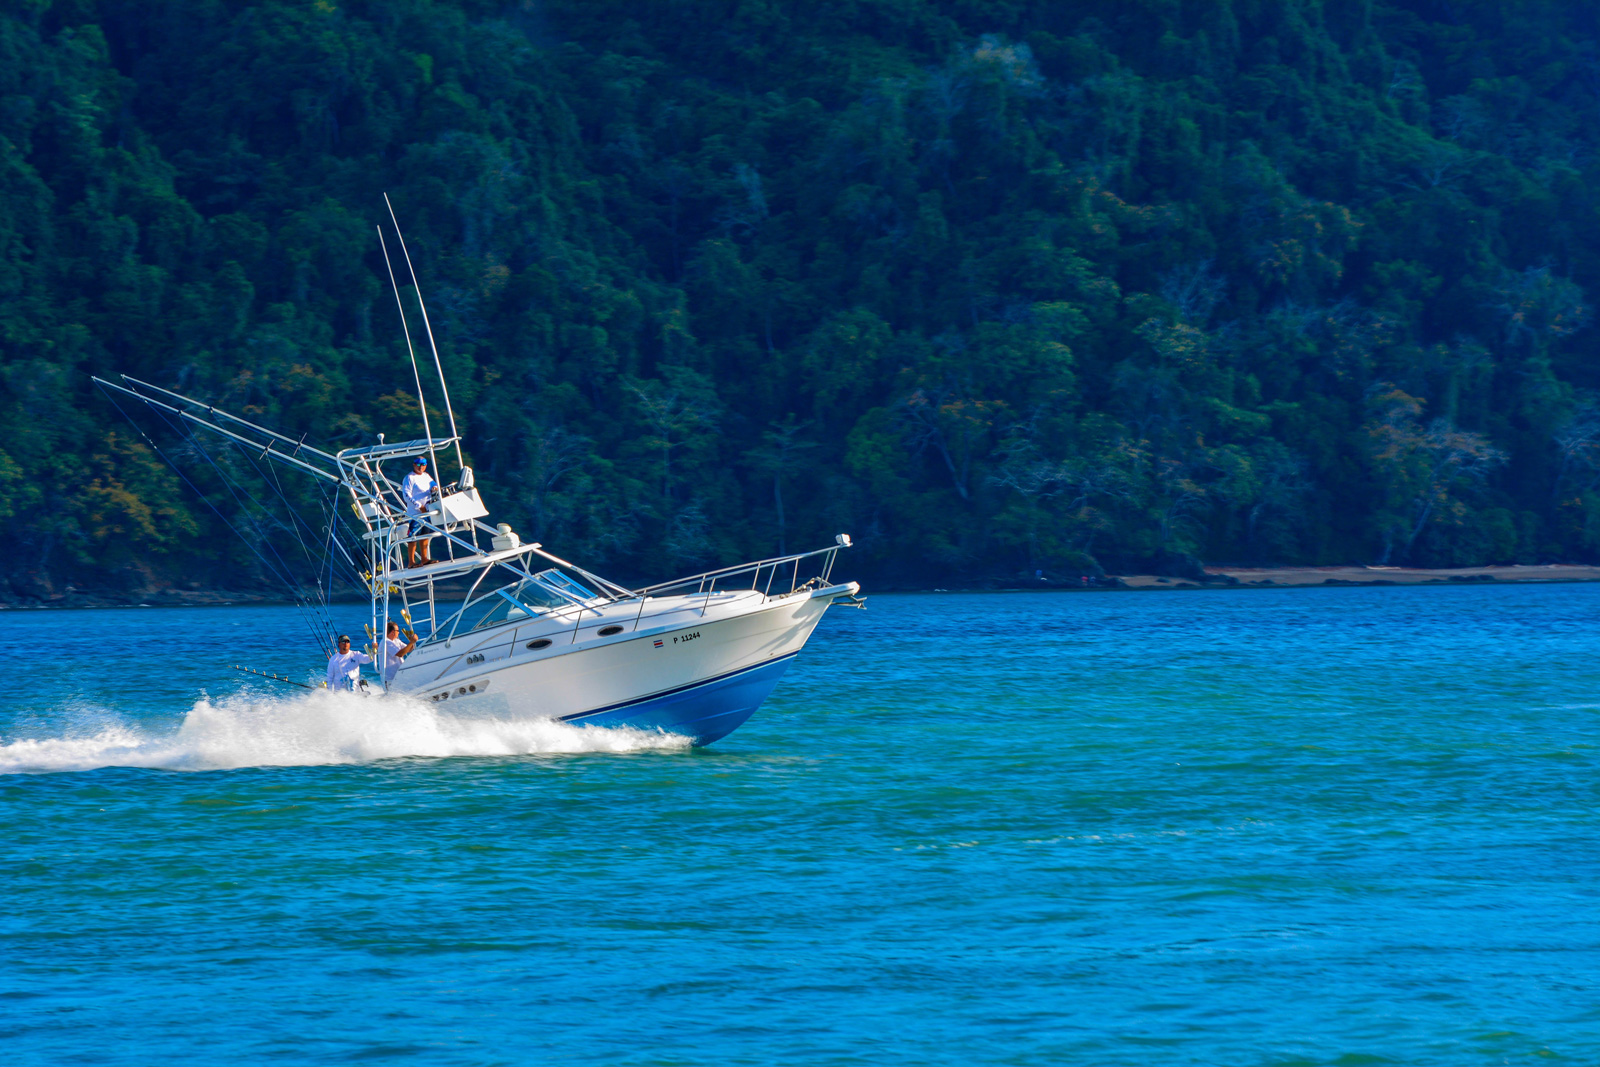 Costa rica los suenos quepos fishing charters book for Costa rica fishing charters